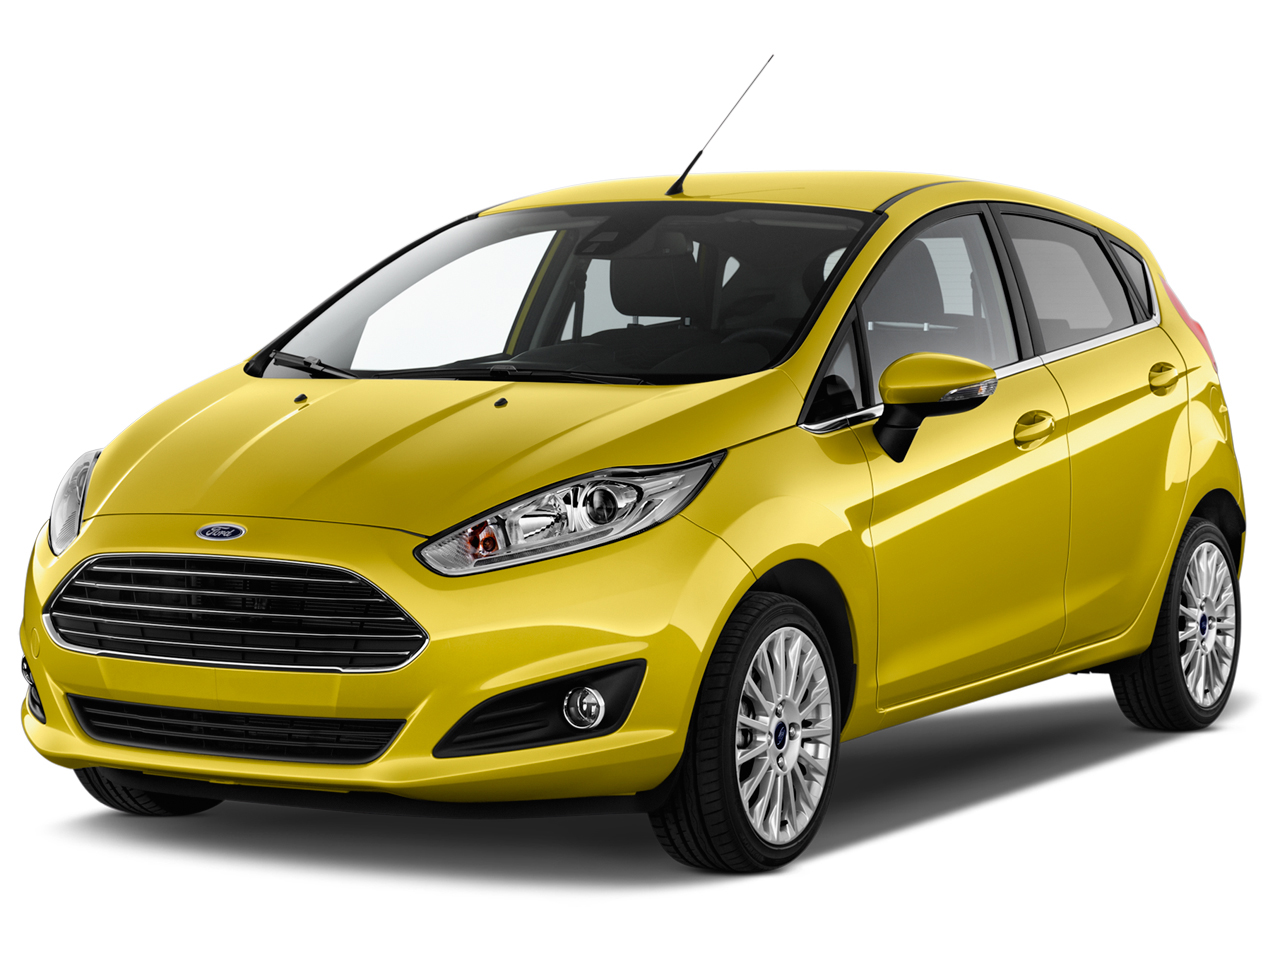 Ford Fiesta Vs Hyundai Accent Compare Cars